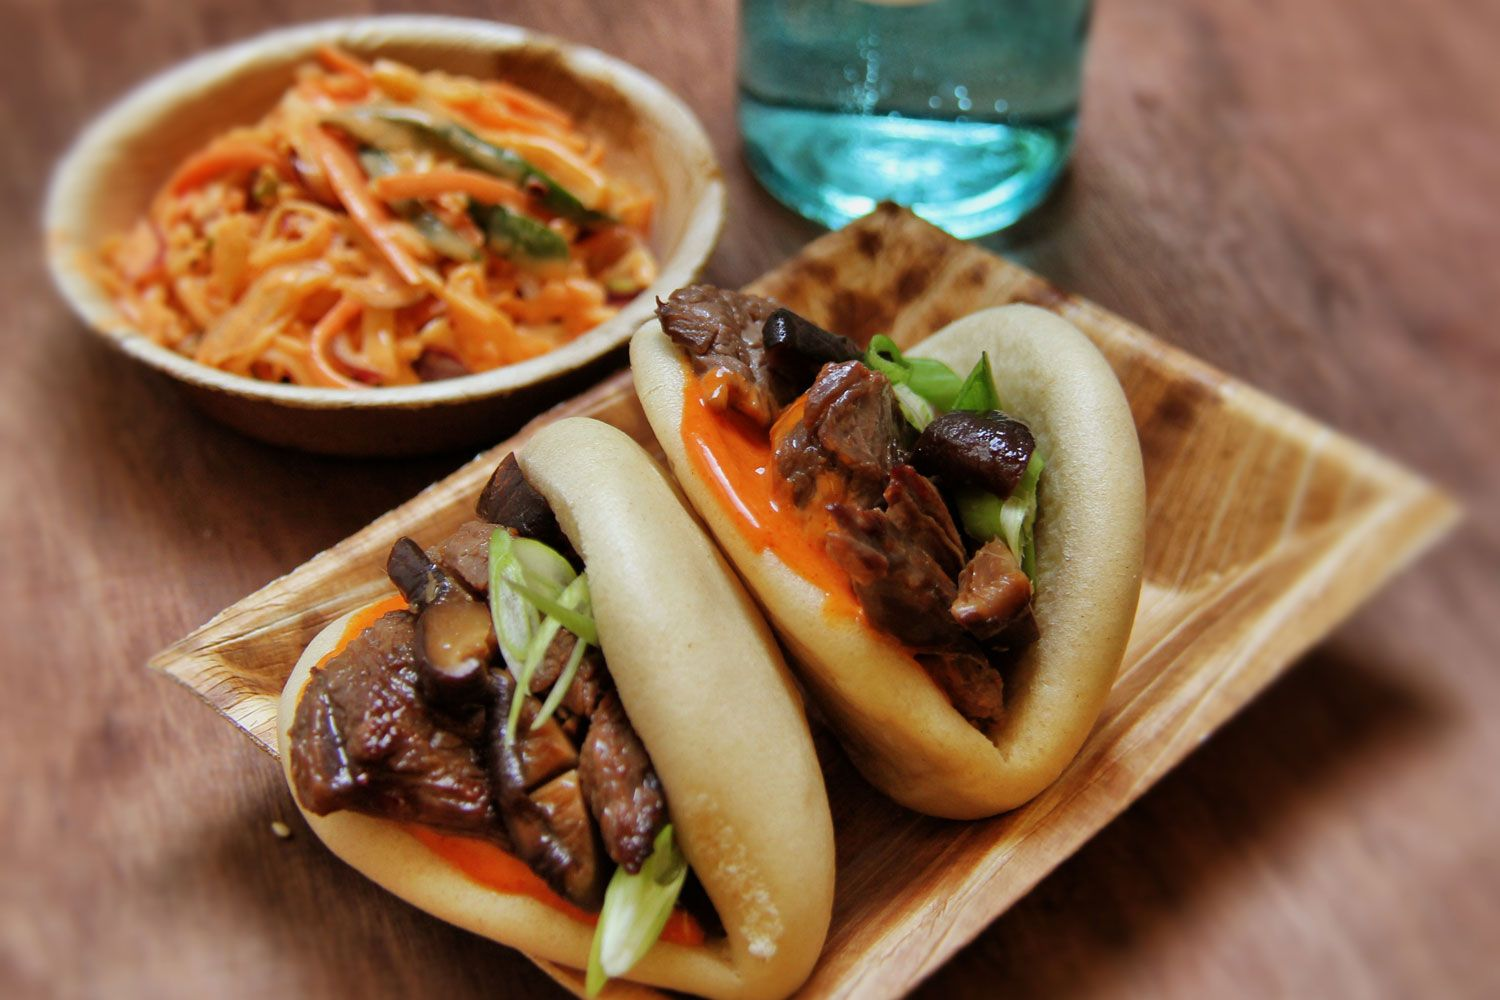 Bao Restaurant, London serves with tantalizing menu which is fresh and innovative